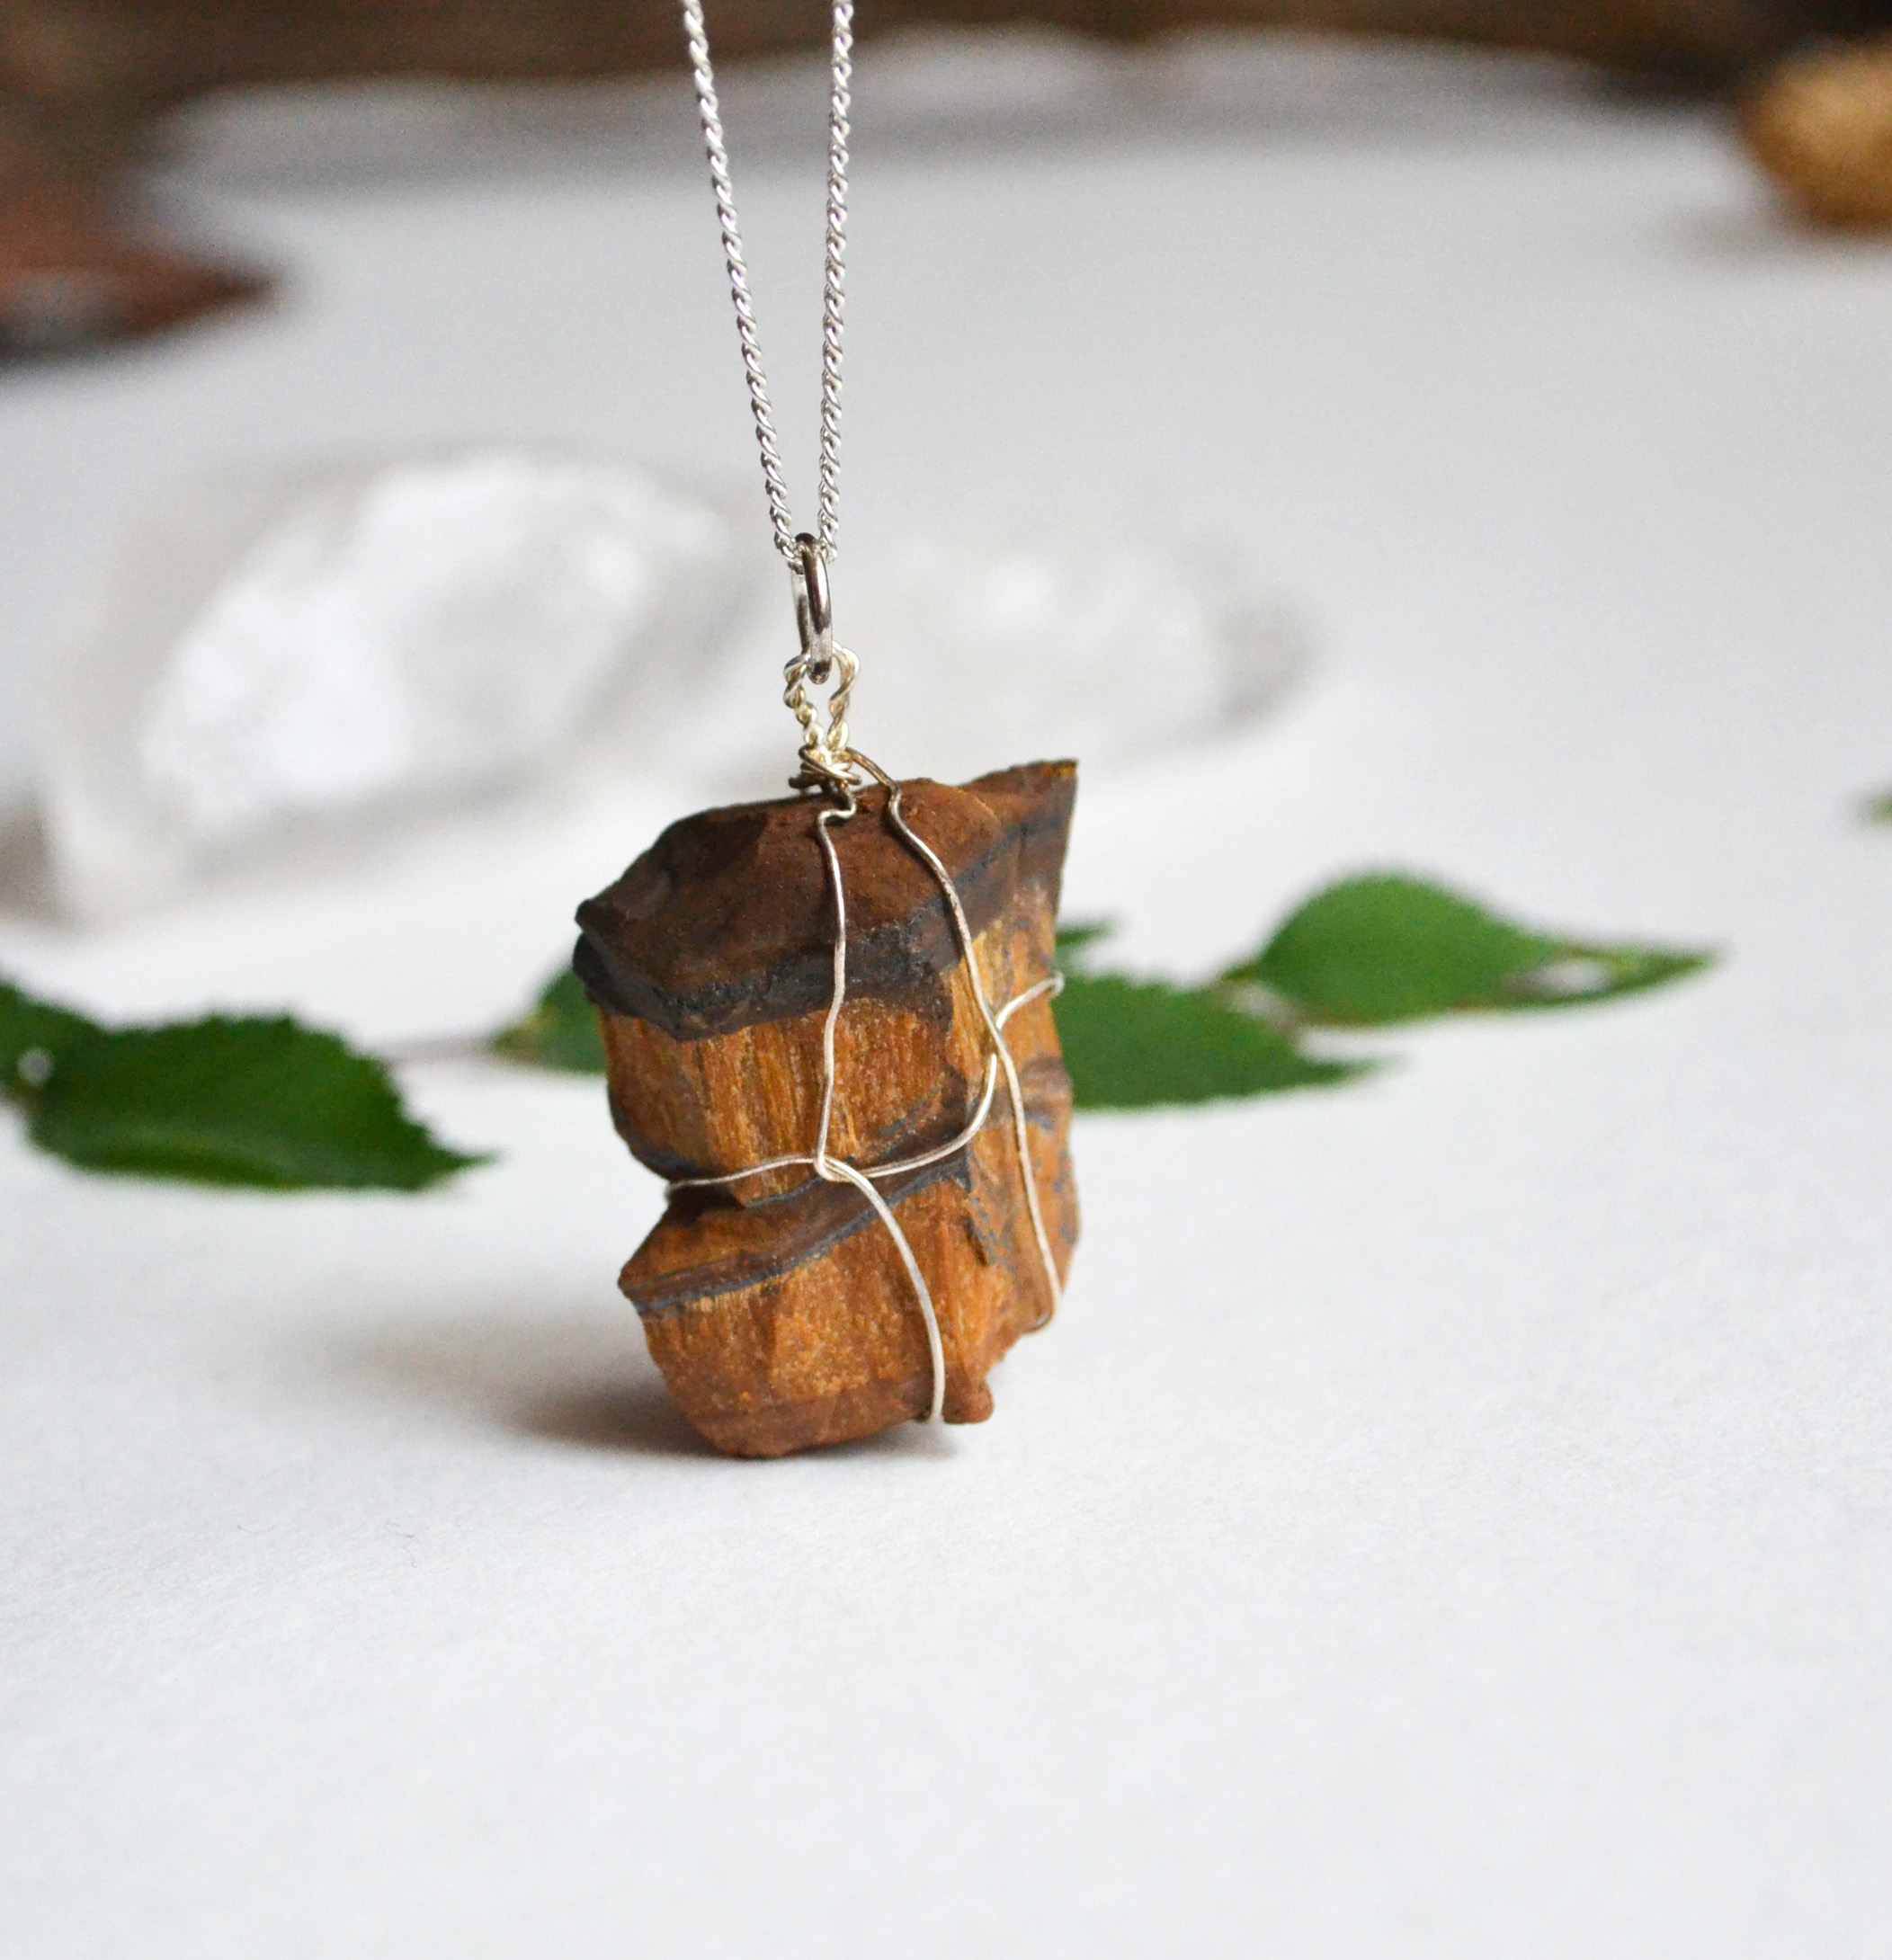 decadorn product necklace pendant com by crystal notonthehighstreet original raw astro stone